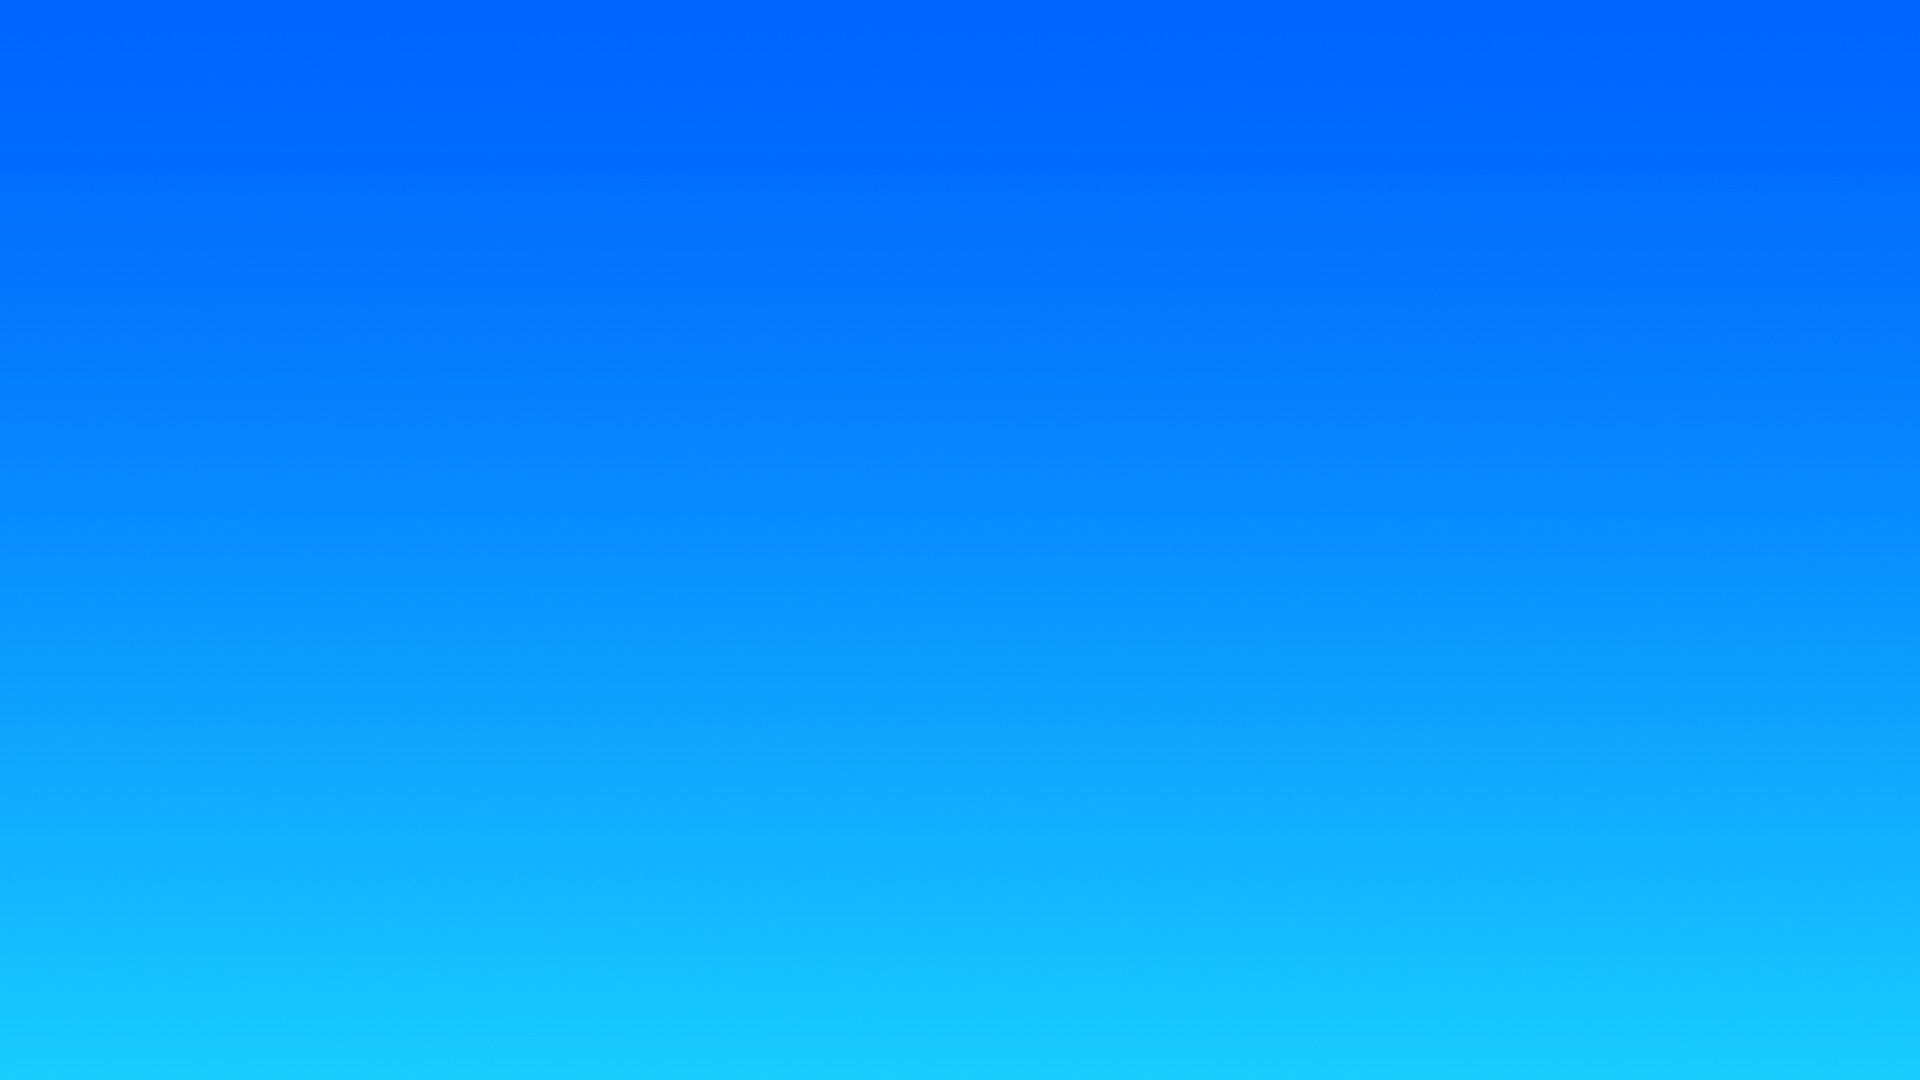 Sky-Presentation-Gradient-Background